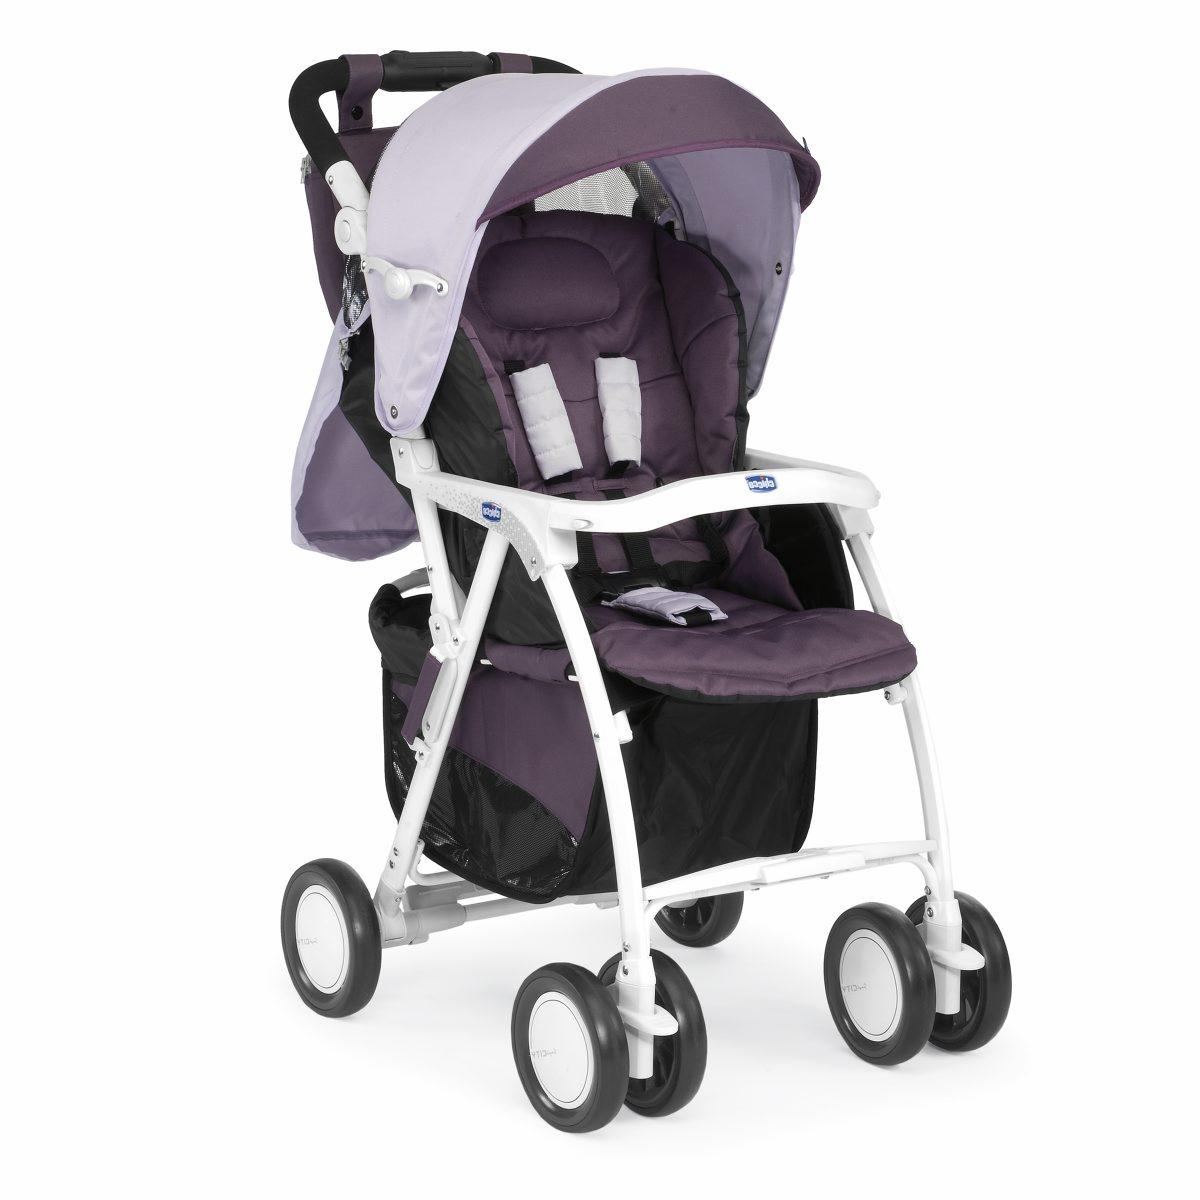 Коляска Chicco Simplicity Top Stroller morgana<br>